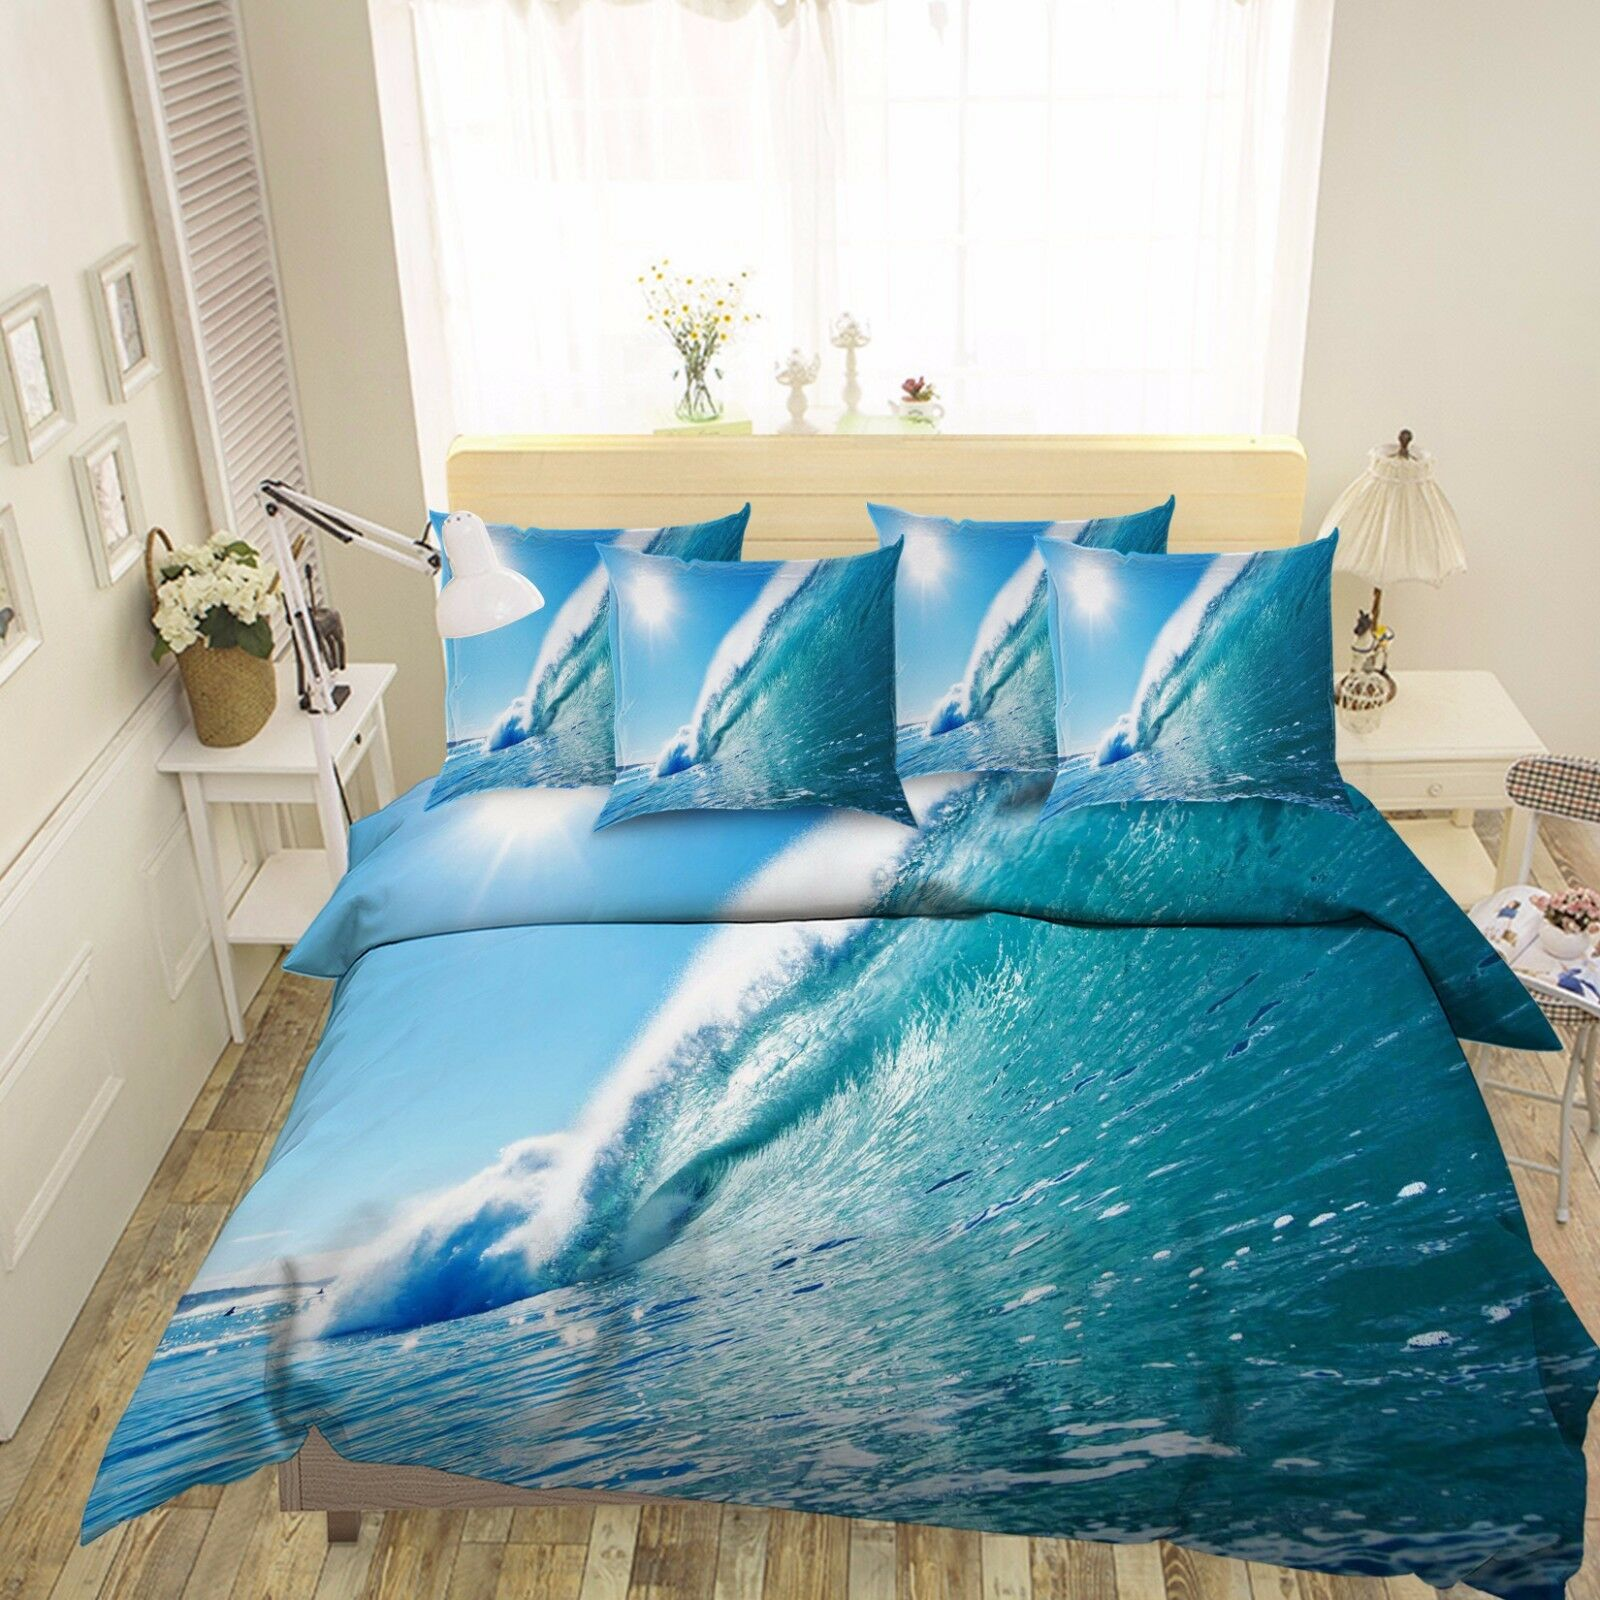 3D Sunshine Sea Waves 462 Bed Pillowcases Quilt Duvet Cover Set Single Queen CA